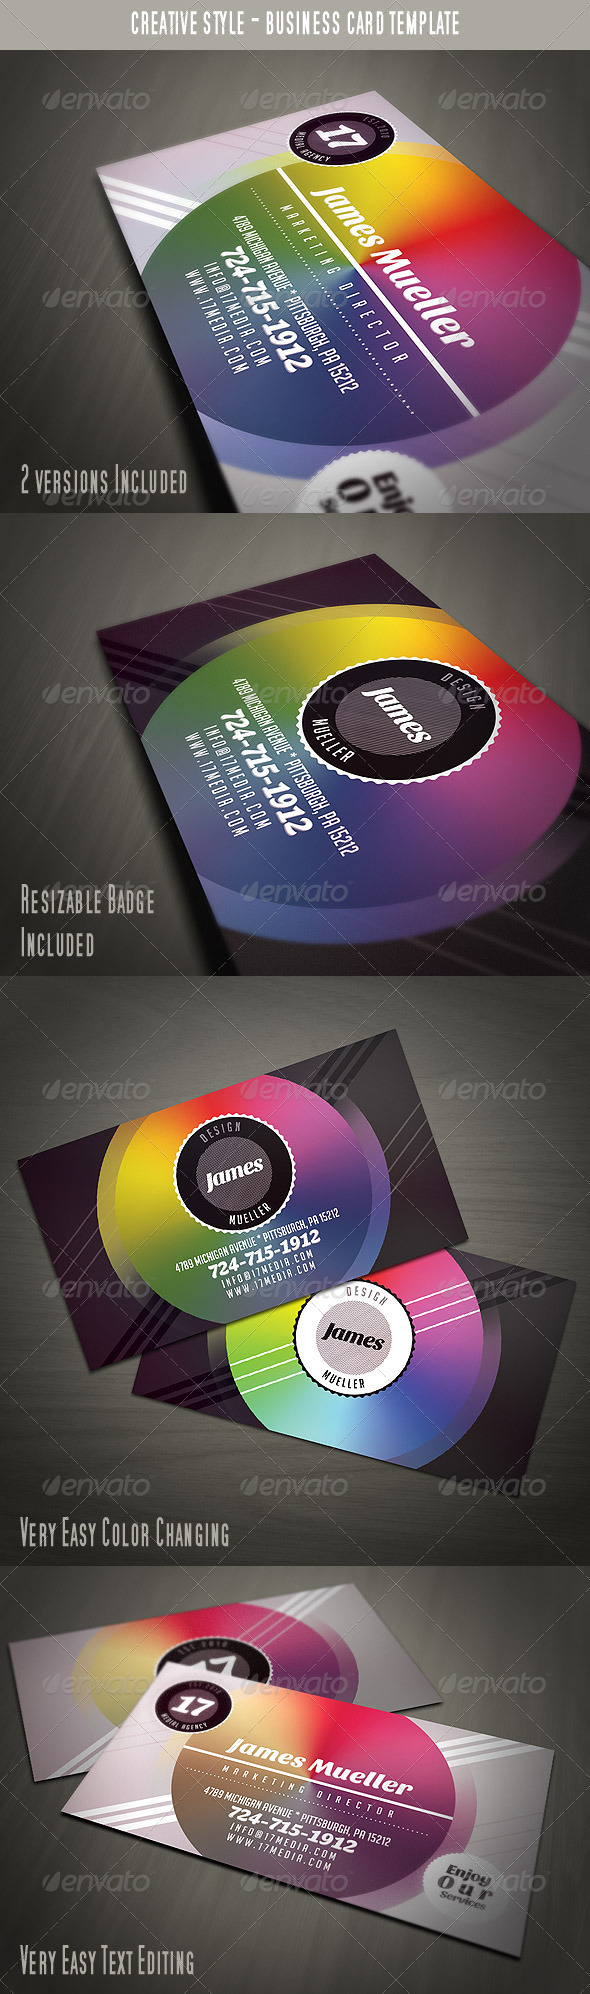 GraphicRiver Creative Style Business Card 3701252